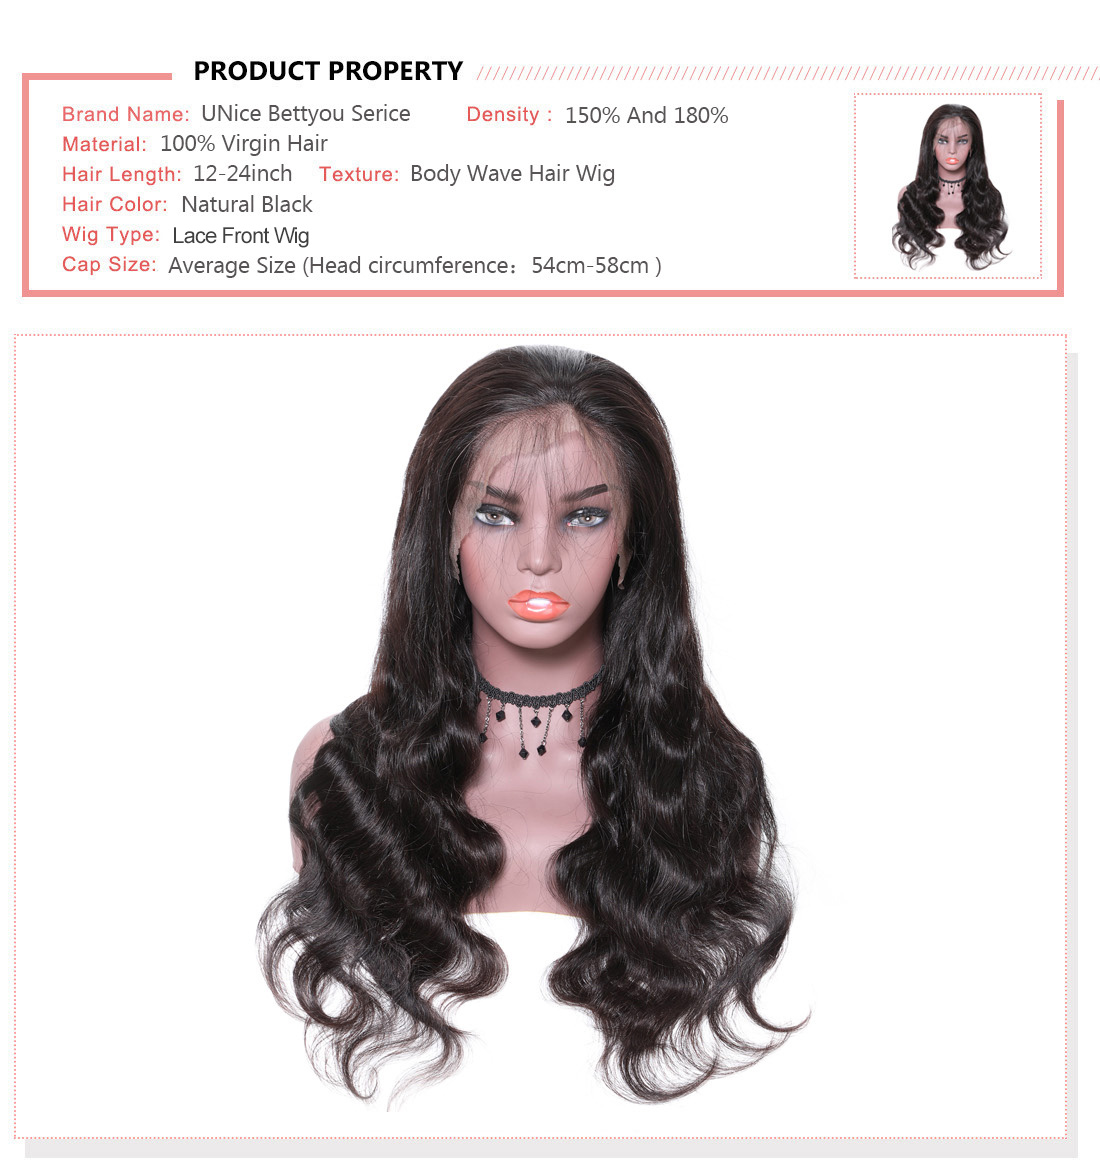 UNice Hair Bettyou Wig Serices 100% Virgin Hair Soft Long Body Wav Wig Density 150% And 180%